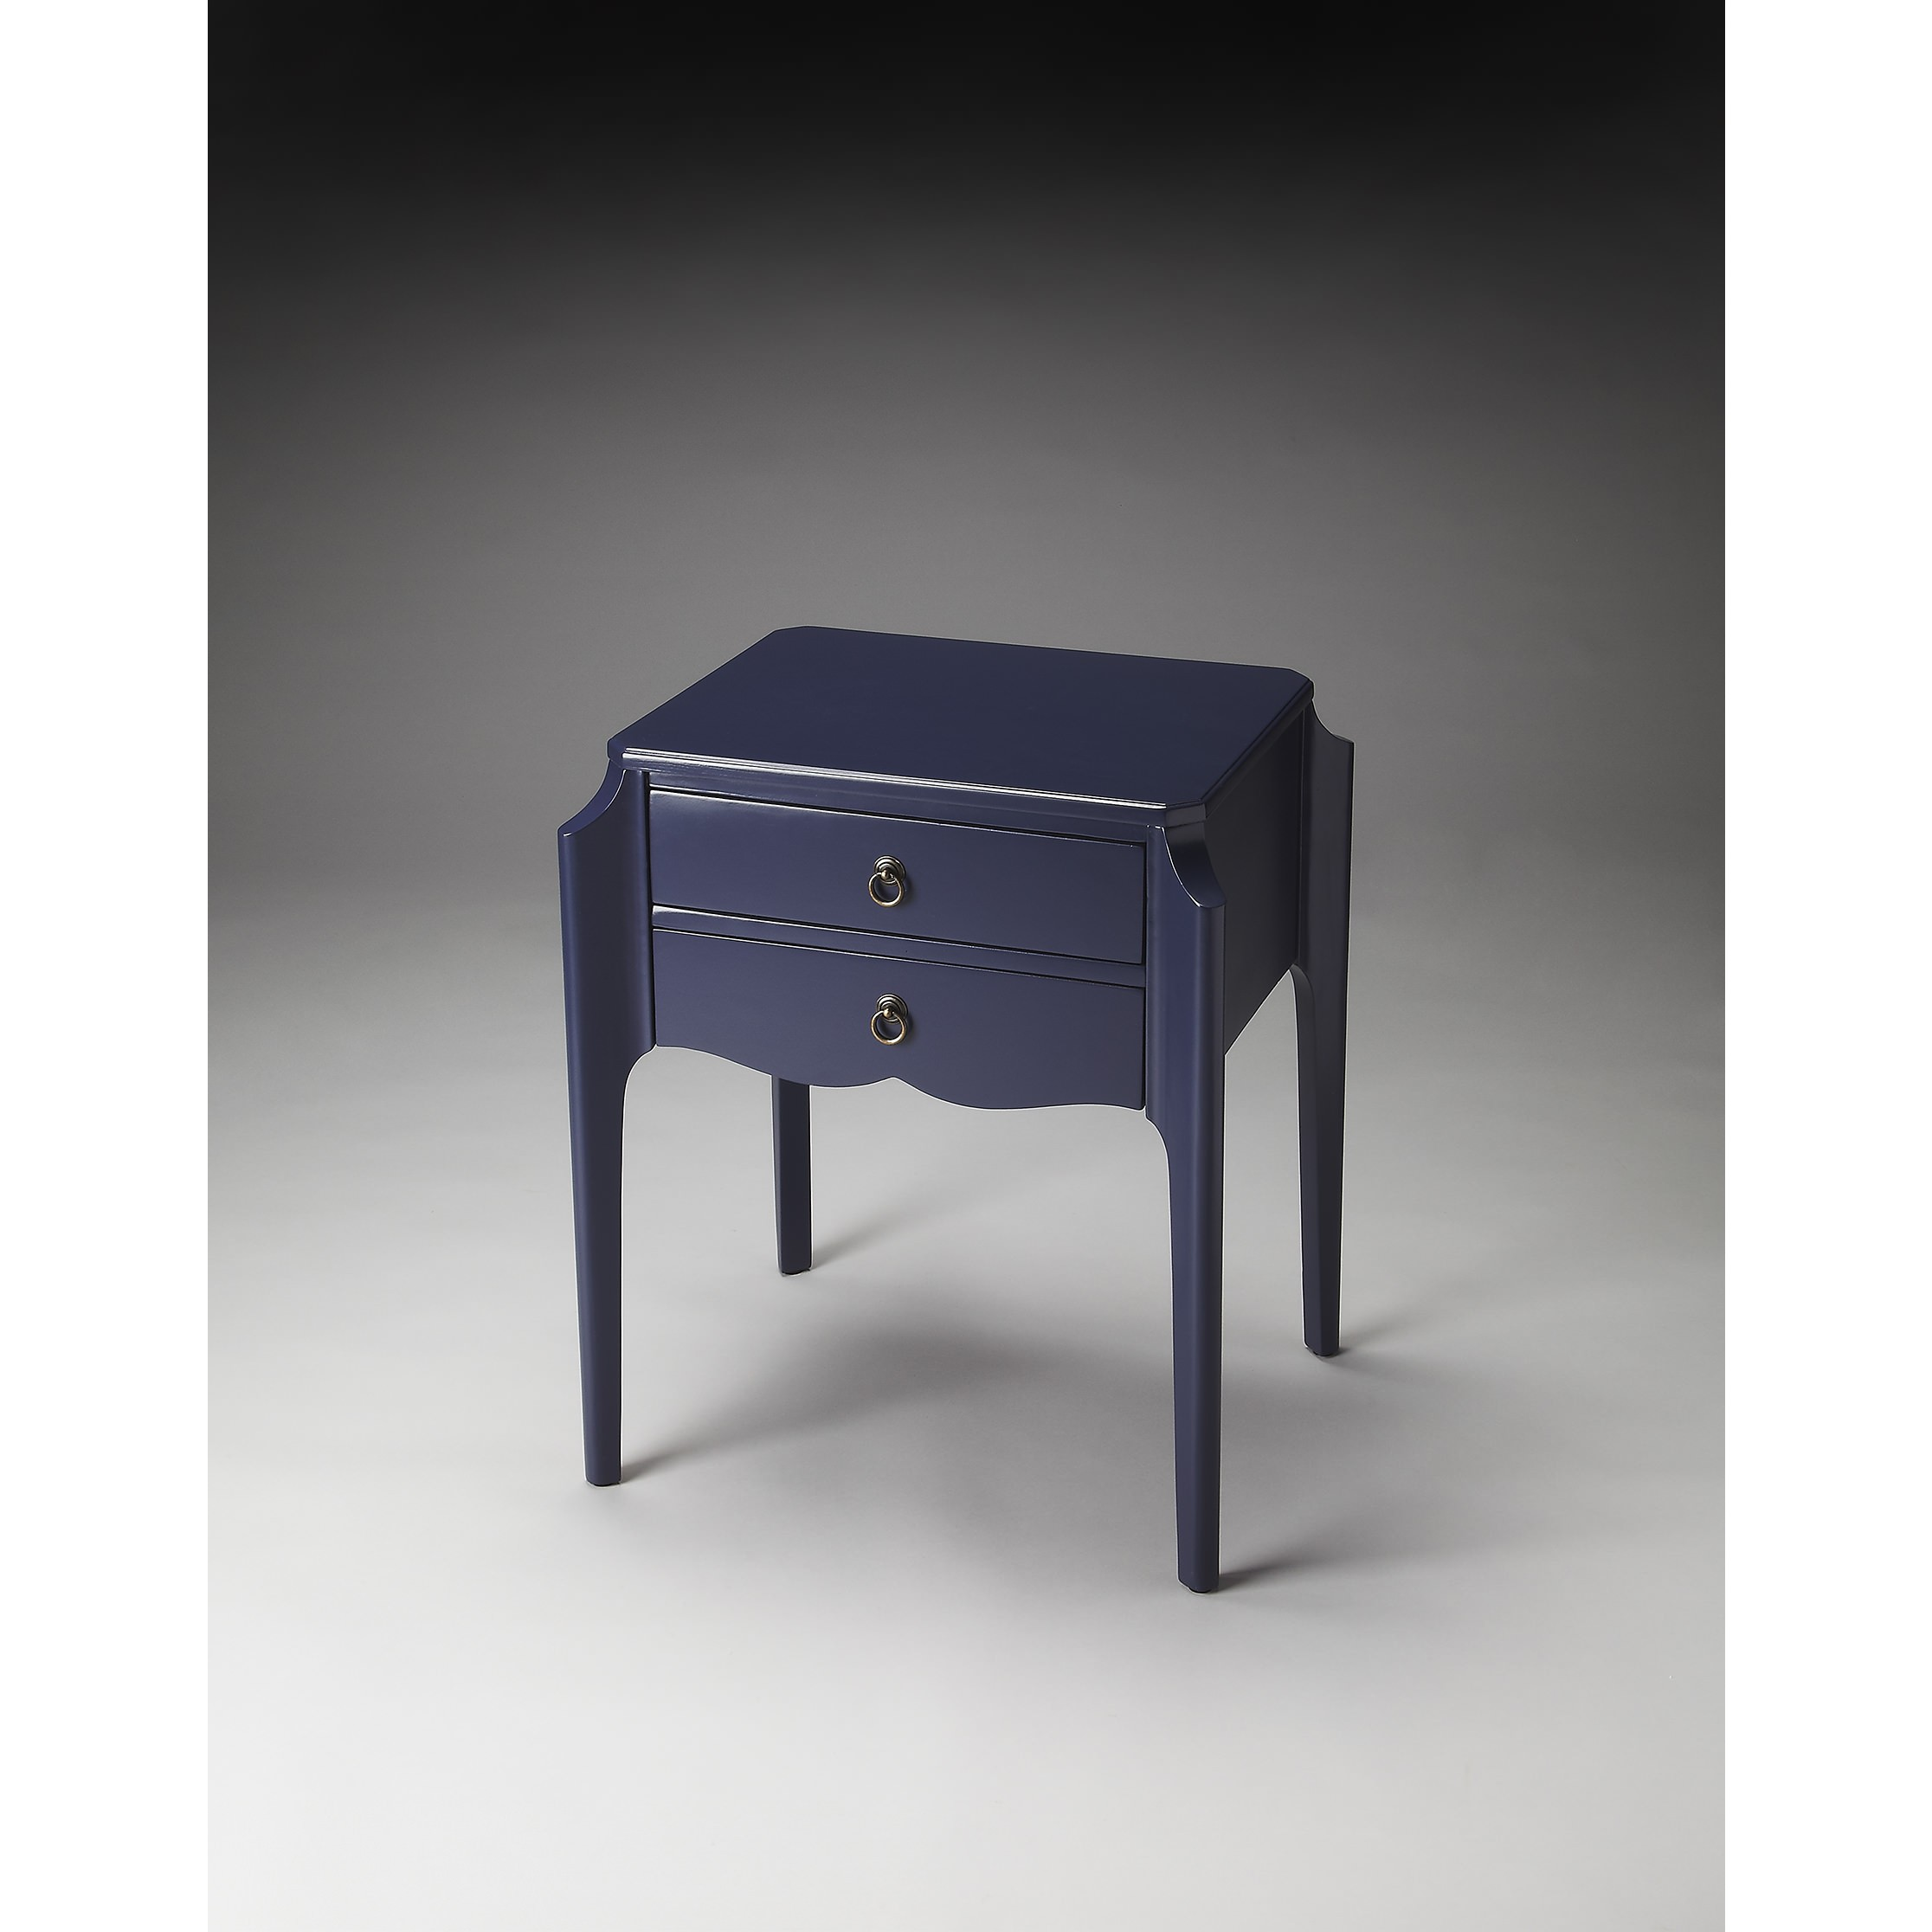 patio end table clearance the super awesome small teal verfuhrerisch wilshire accent butler specialty navy blue console tables and sofa thin for entryway white with storage